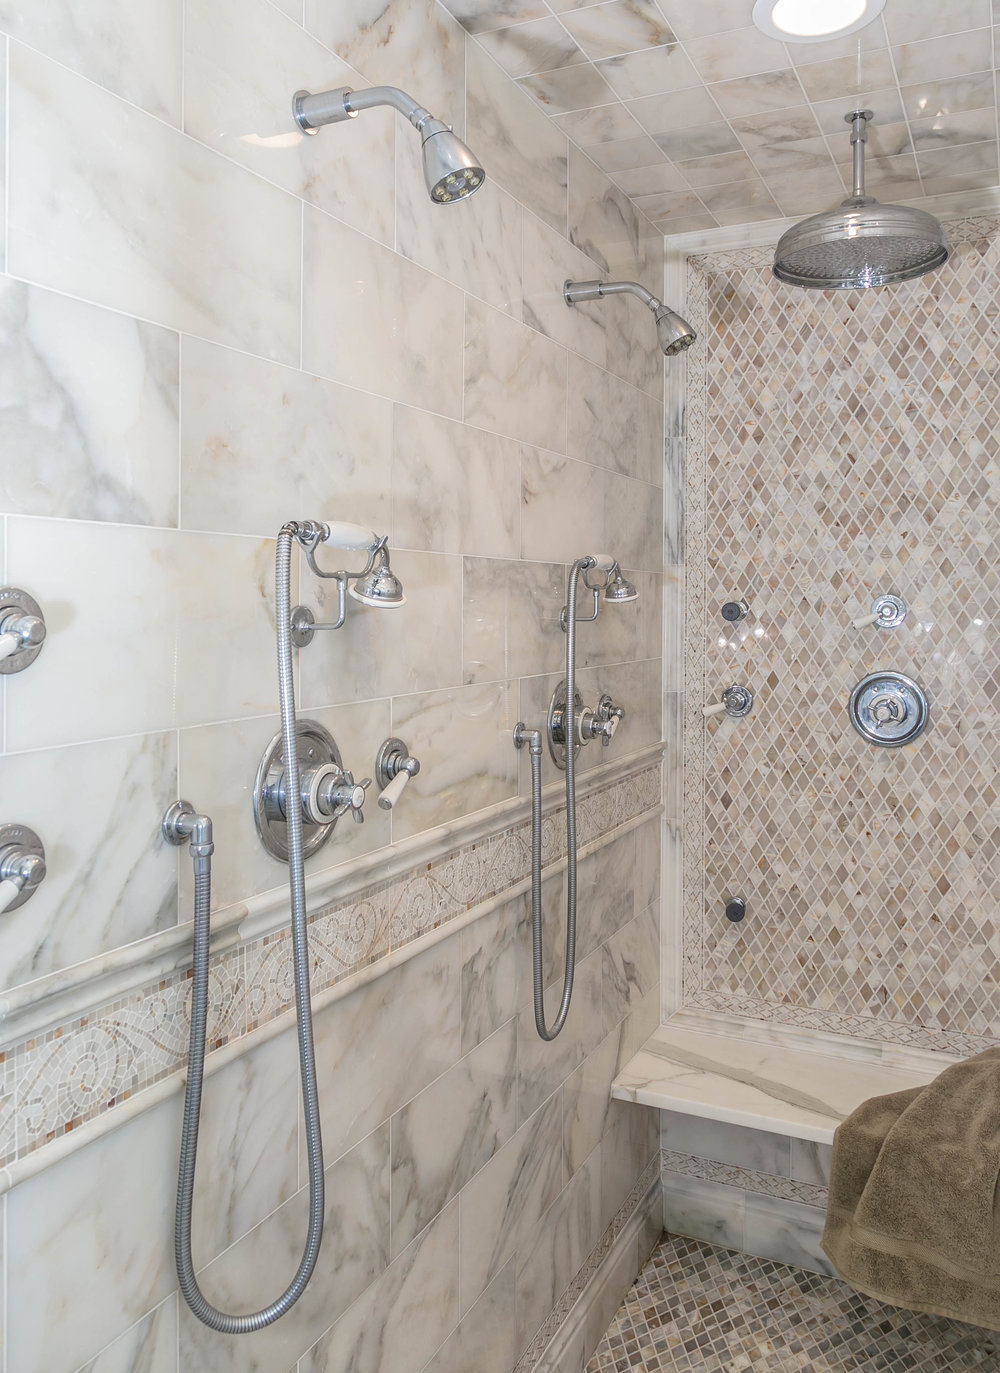 Shower with multiple shower heads and and a seat